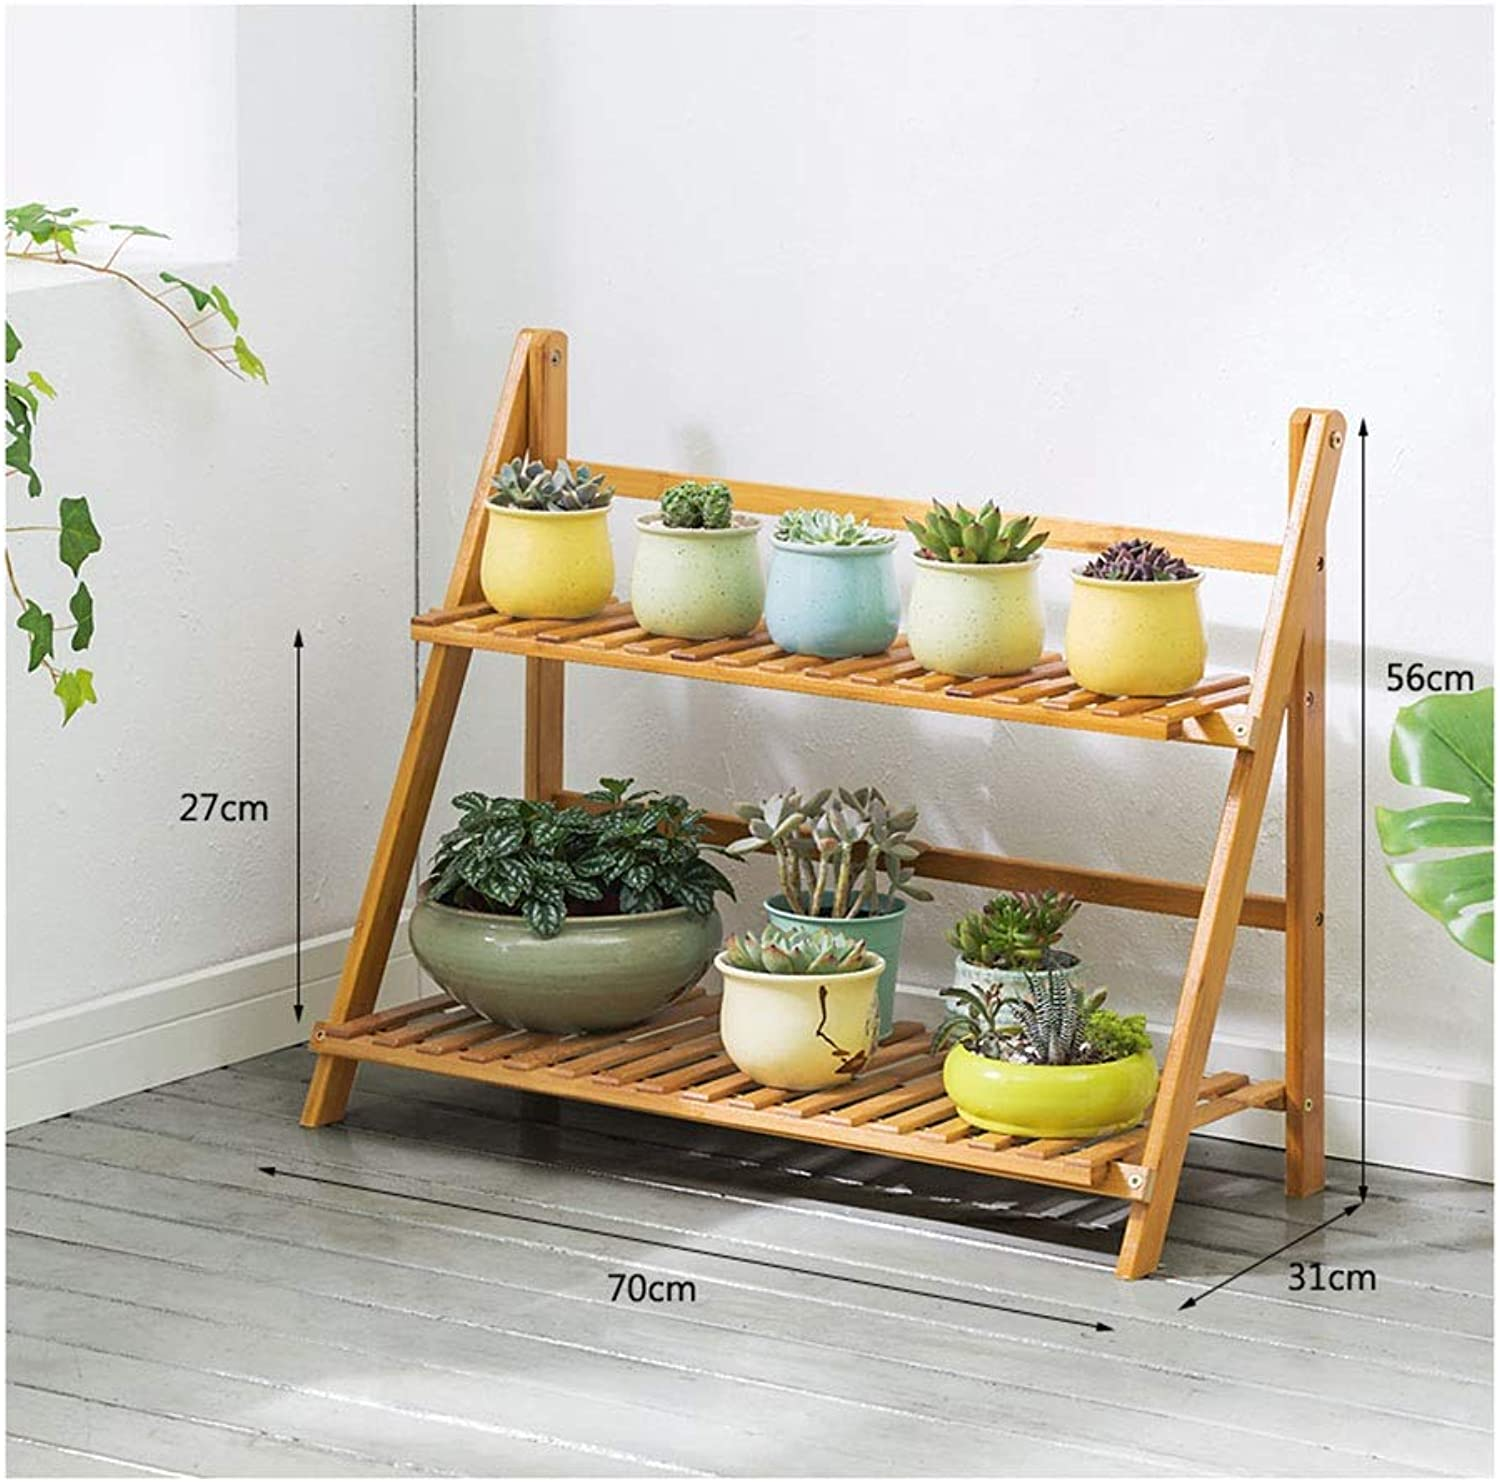 MBD 3 Tiered Folding Plant Ladder Display Stand   Bamboo Succulent Flower Steps for Balcony Decor 56CM